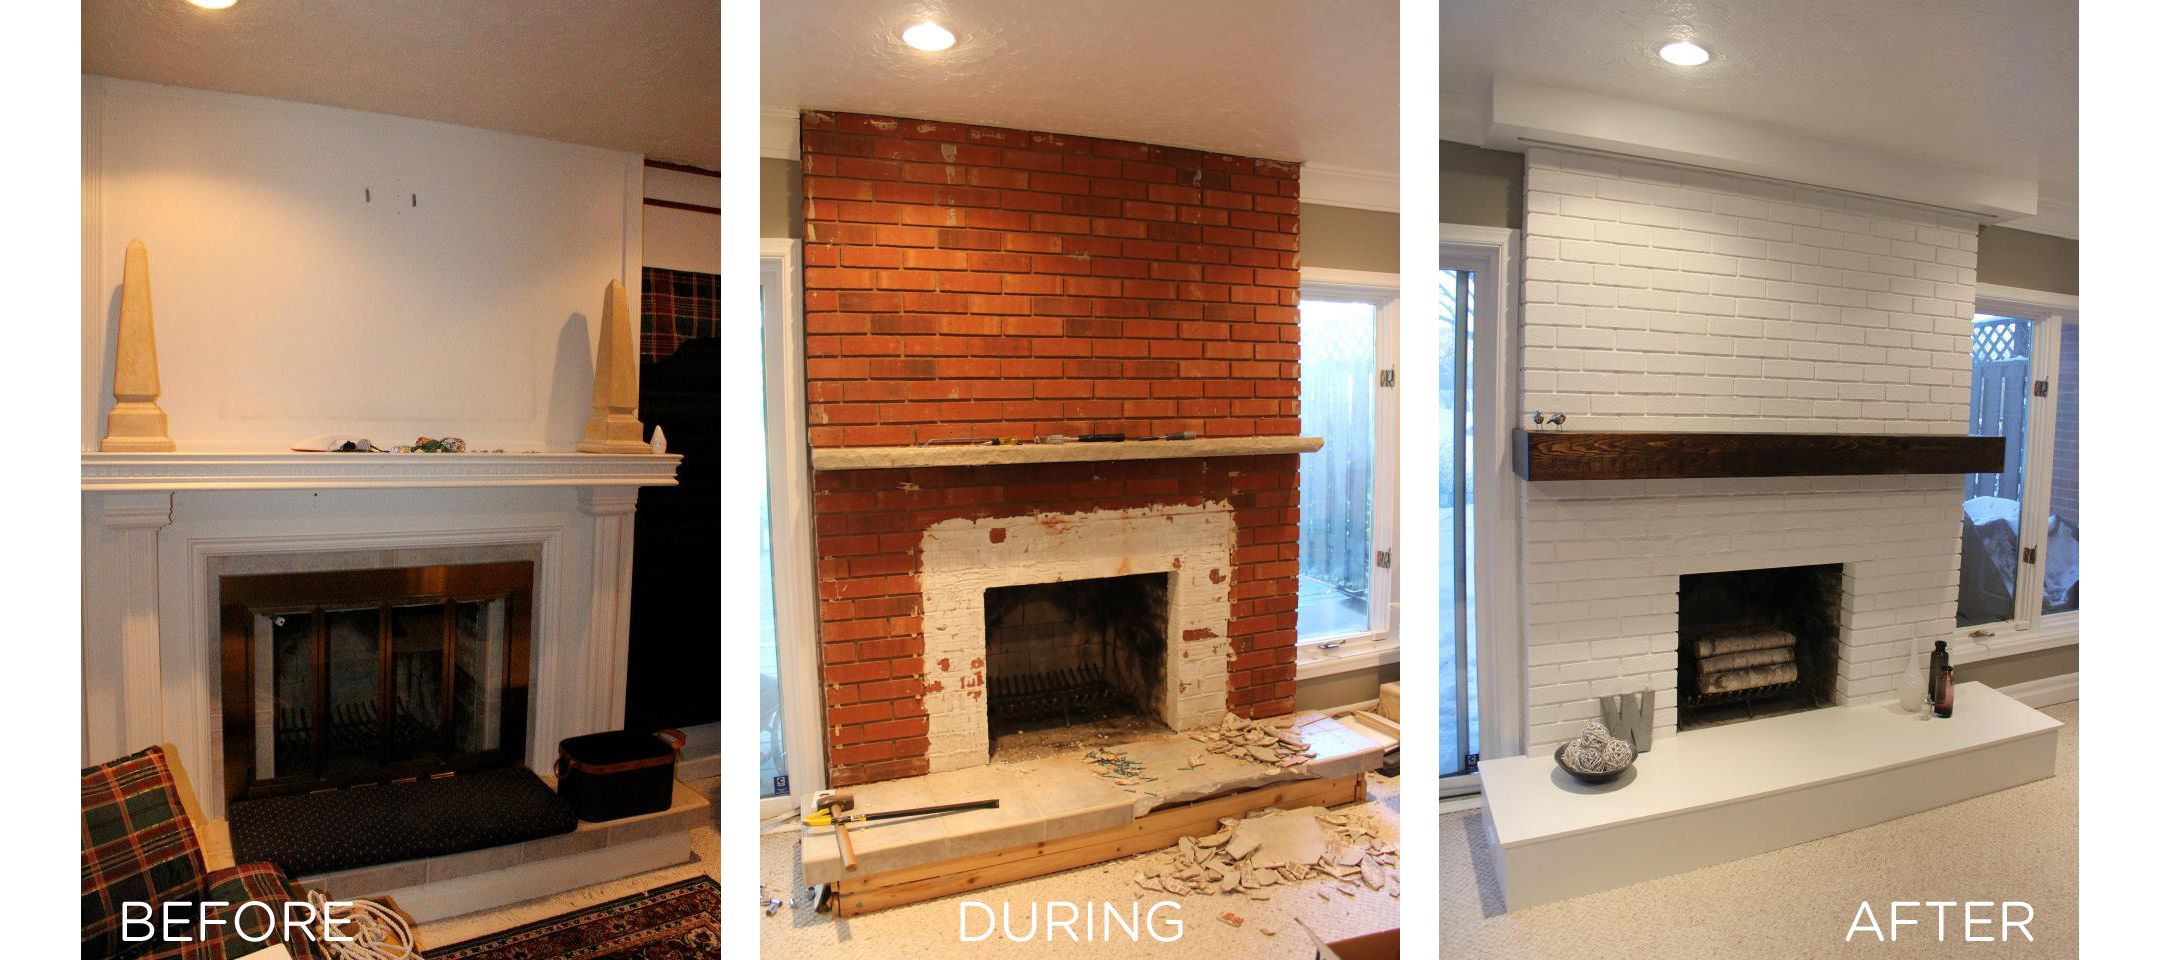 Fireplace Reno With 80 Hidden Projector Screen